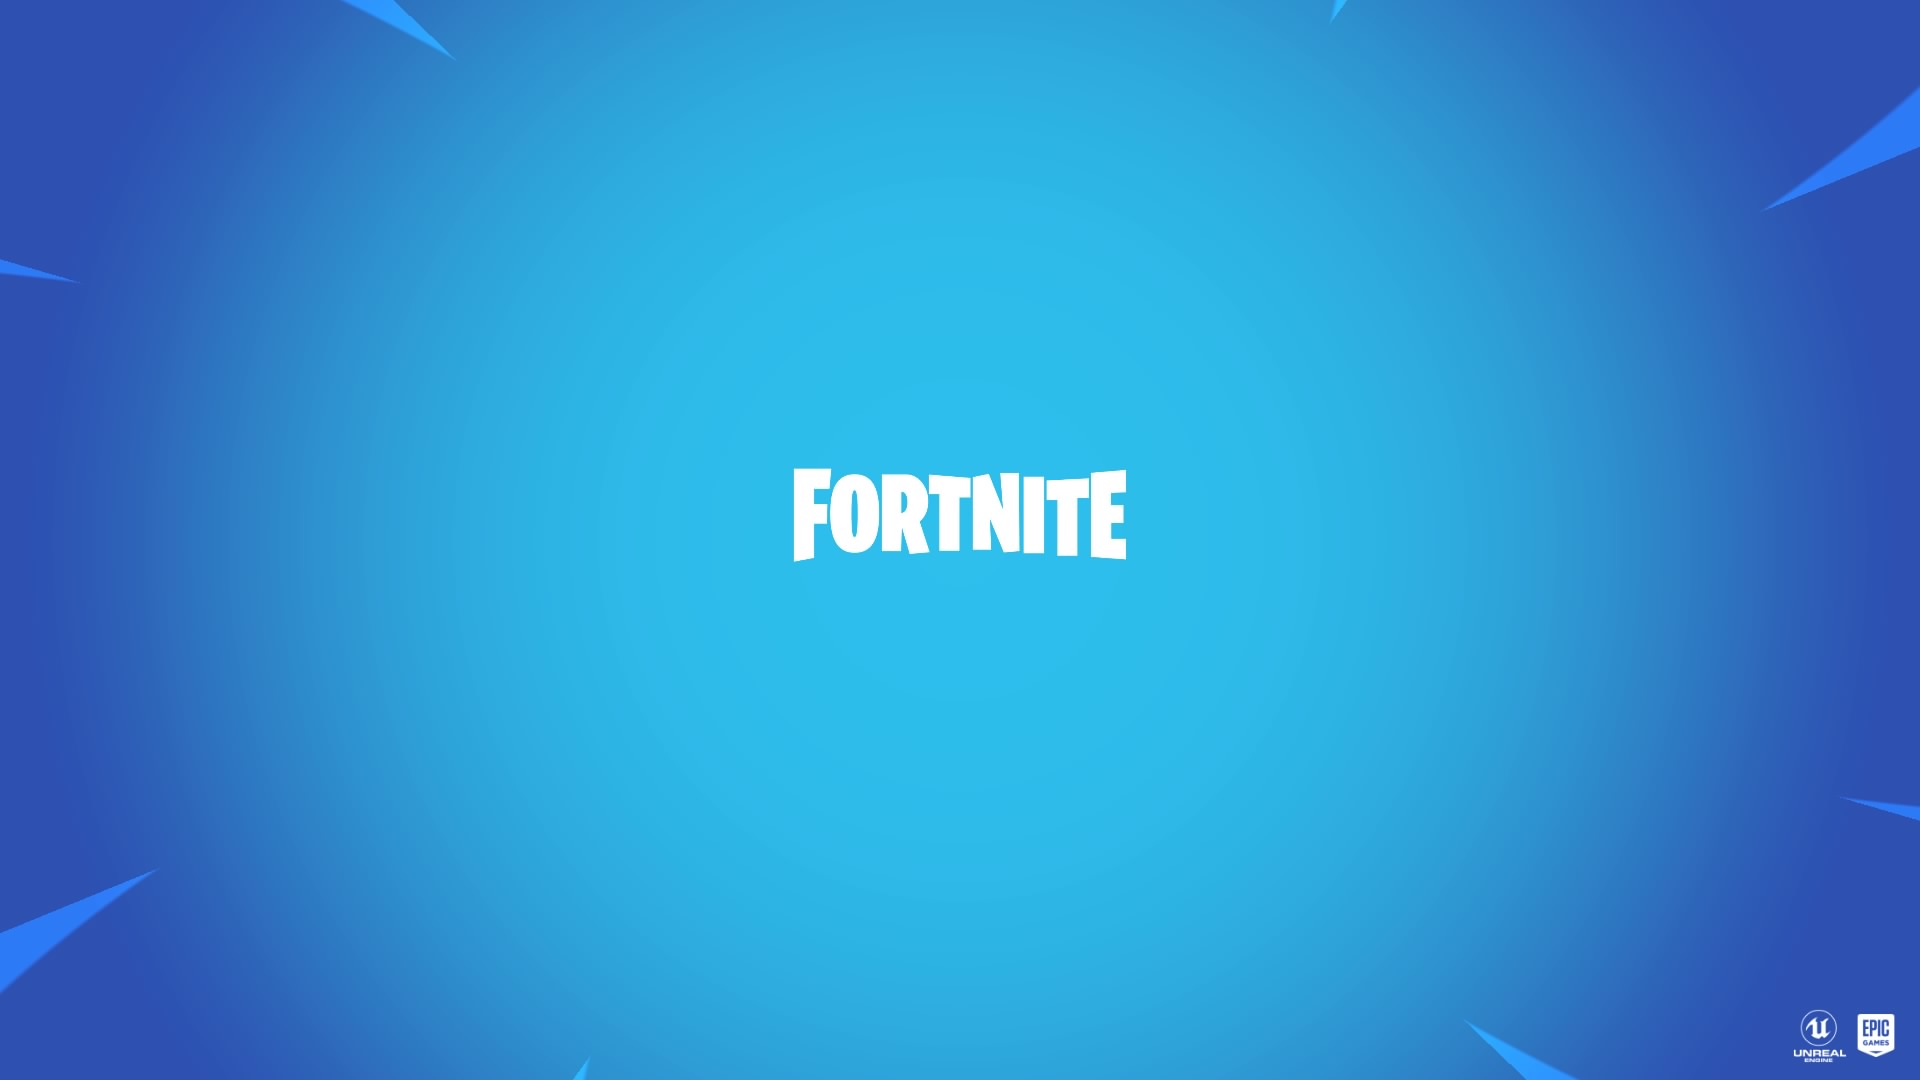 Fortnite Hd Wallpaper 67634 1920x1080px